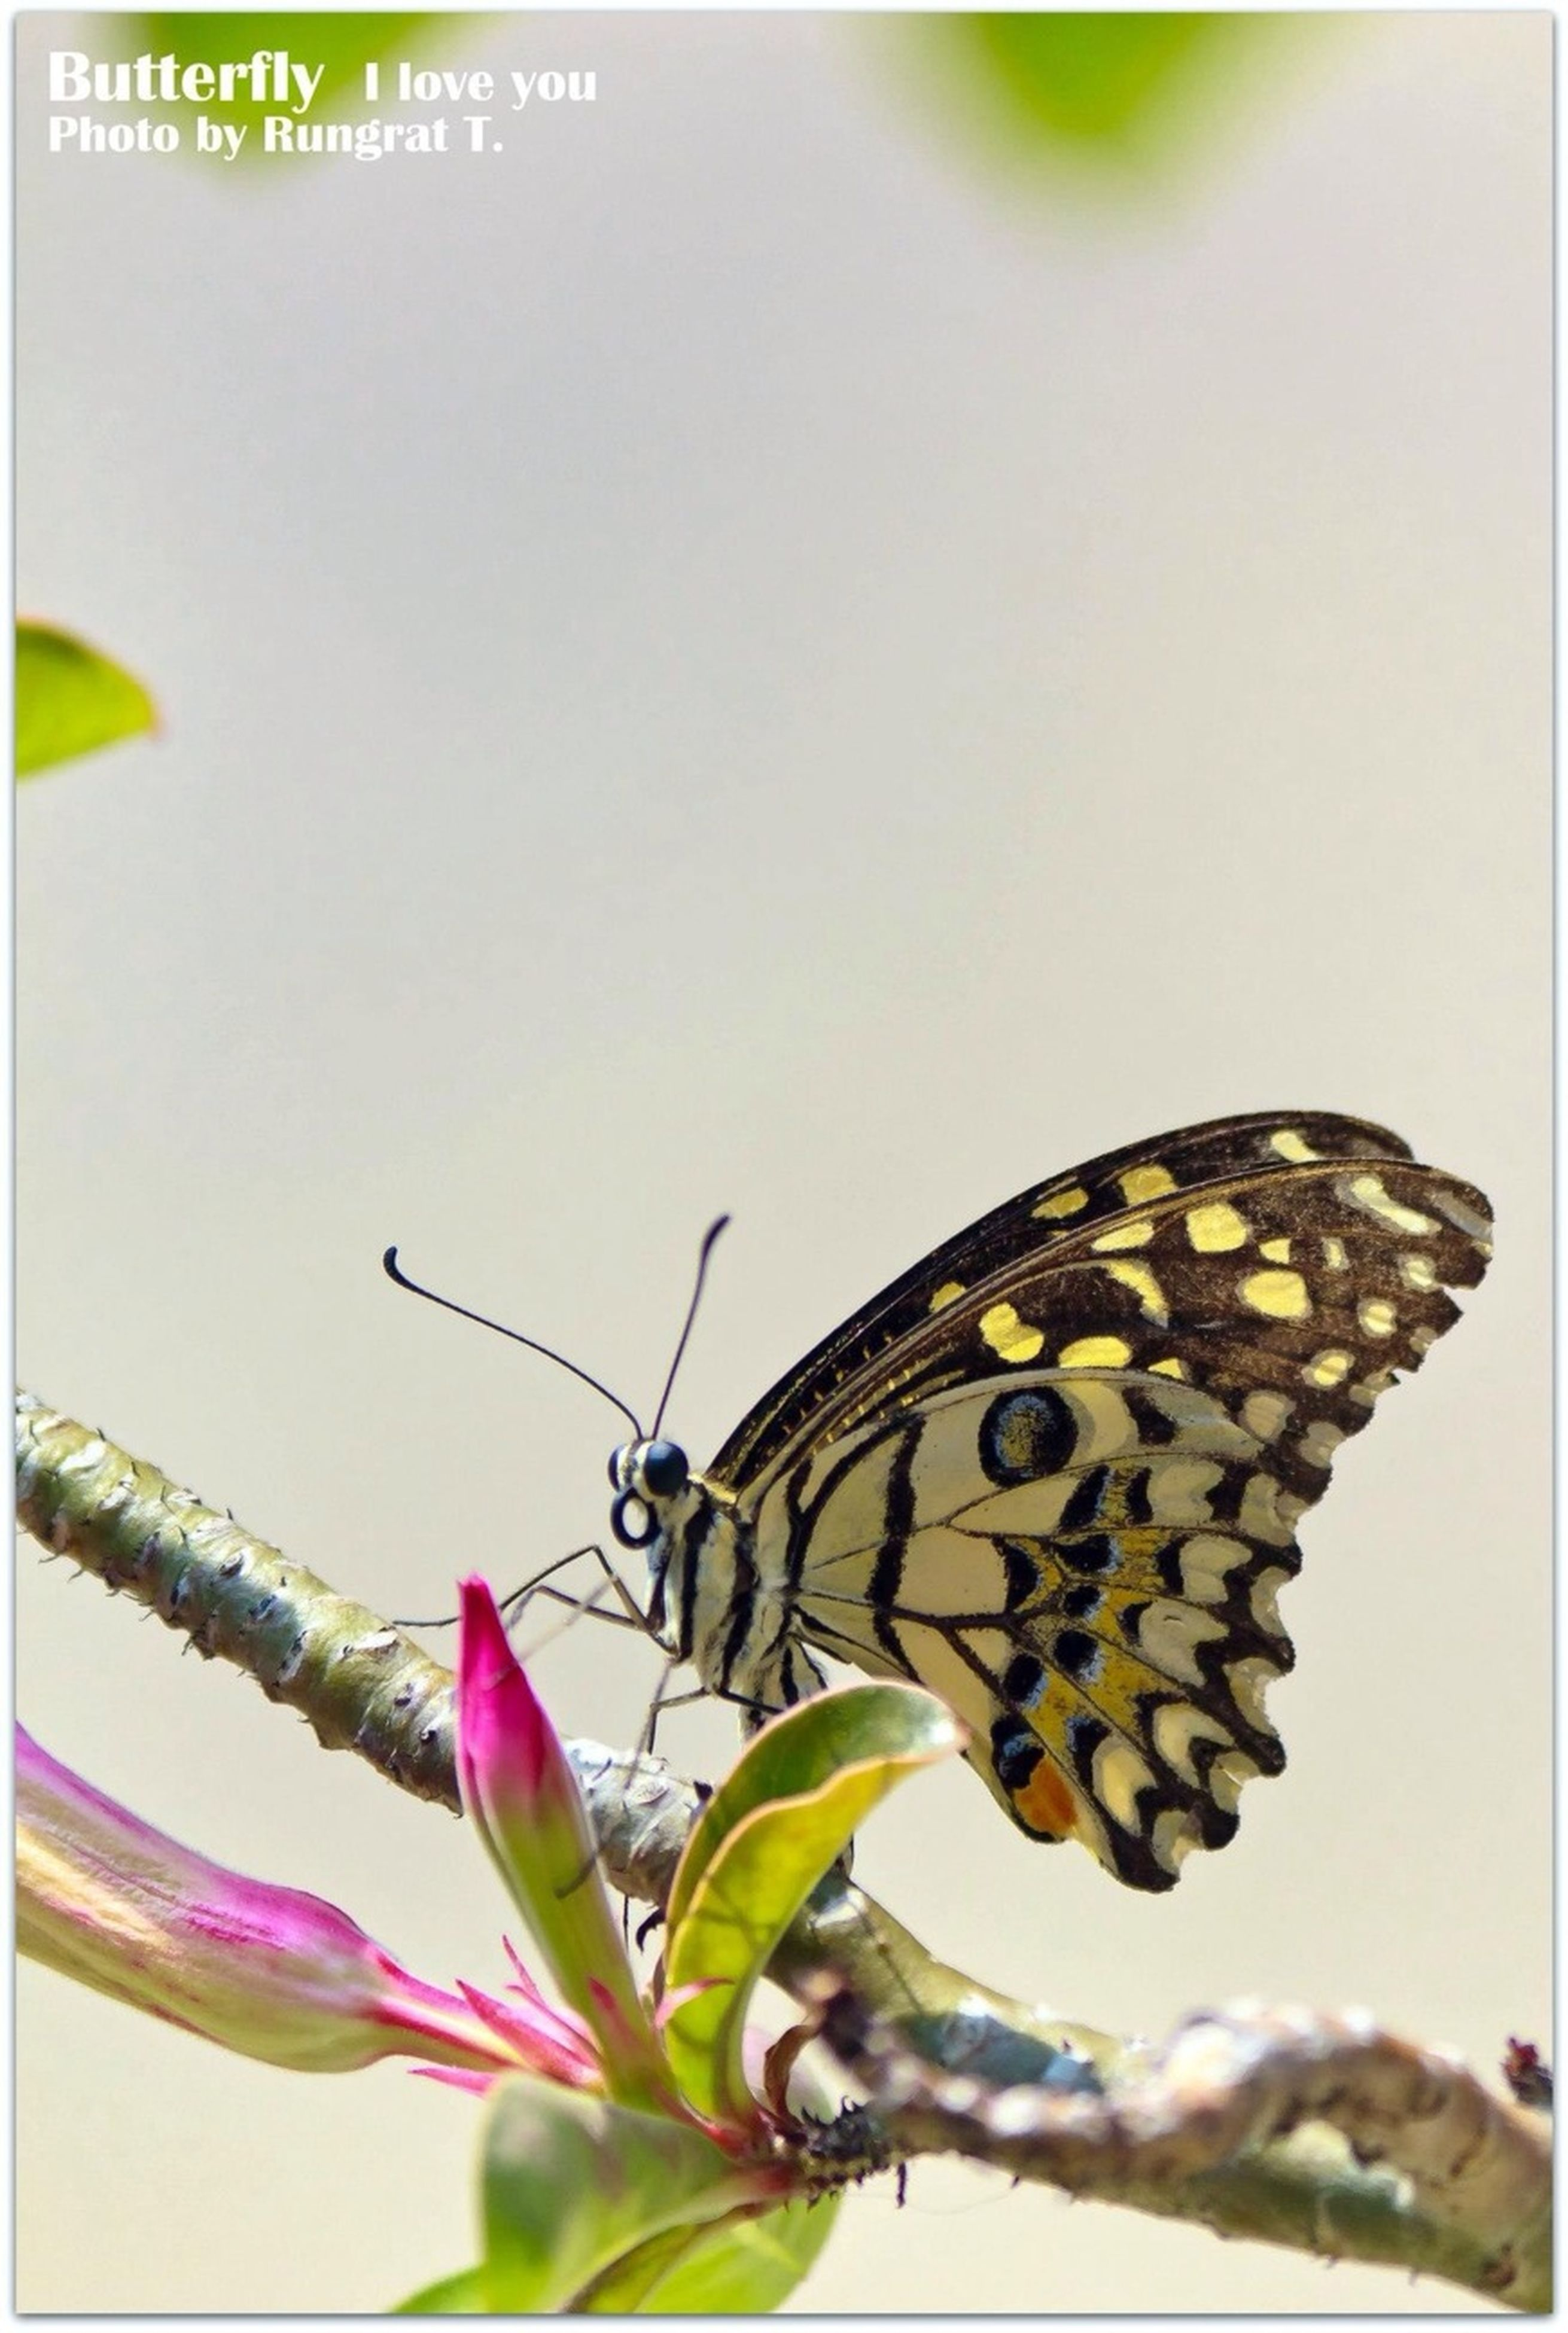 animals in the wild, insect, one animal, wildlife, animal themes, transfer print, butterfly, butterfly - insect, auto post production filter, close-up, focus on foreground, perching, animal wing, leaf, nature, outdoors, plant, day, flower, beauty in nature